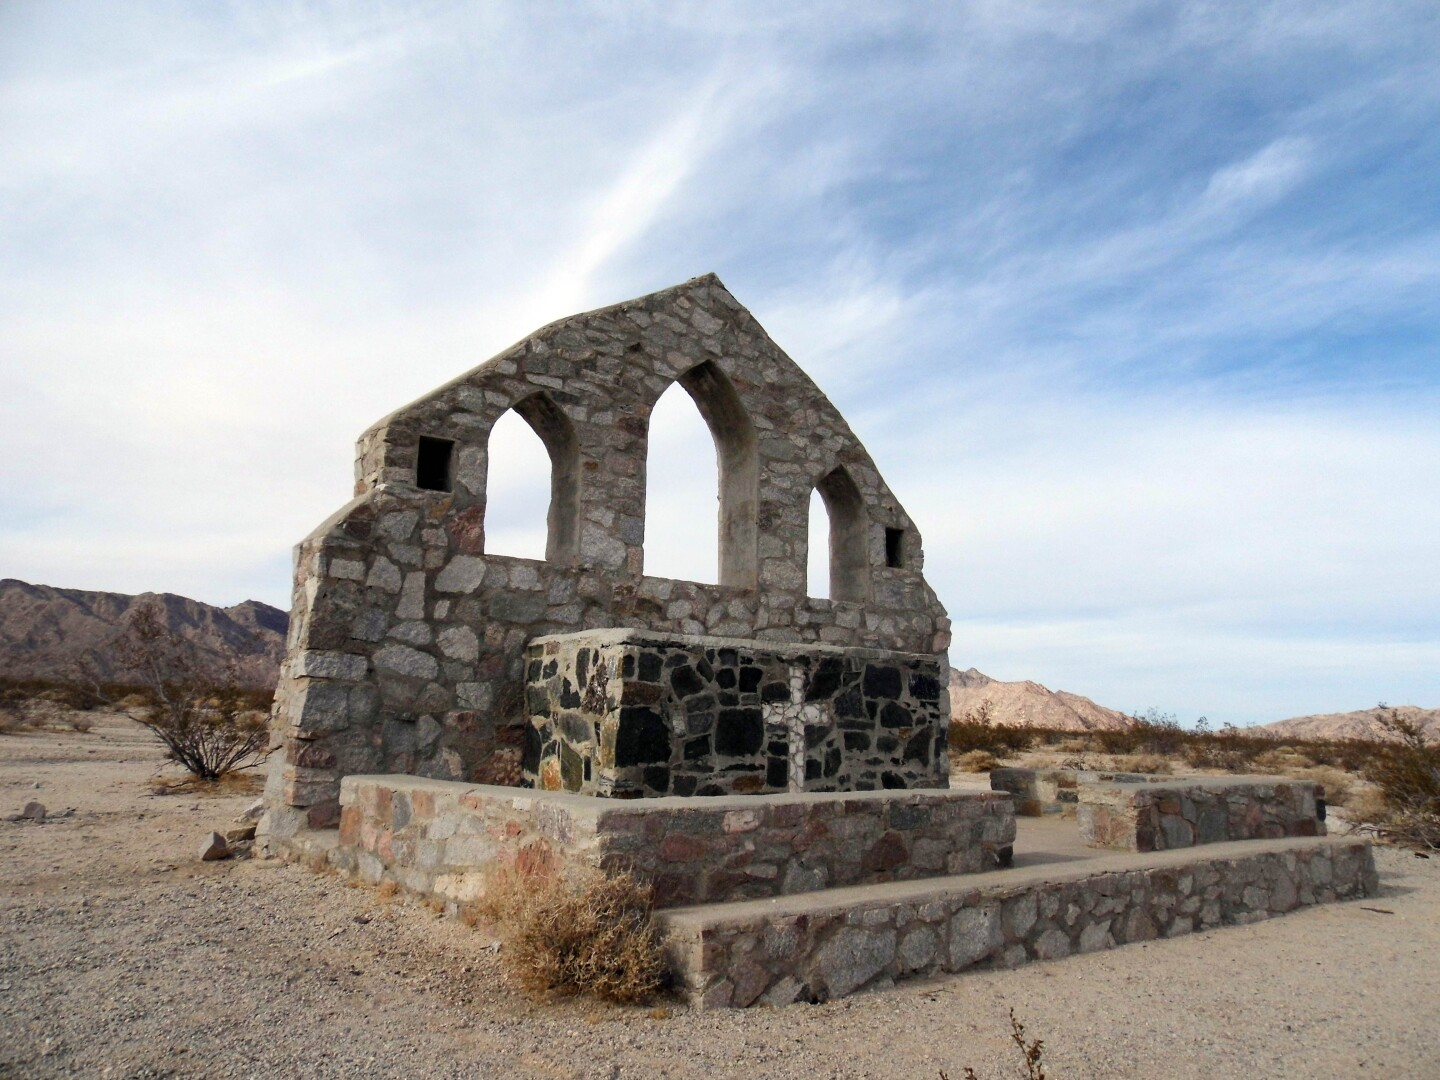 The remains of a Catholic stone chapel stands at Camp Iron Mountain in the Mojave Trails National Monument.